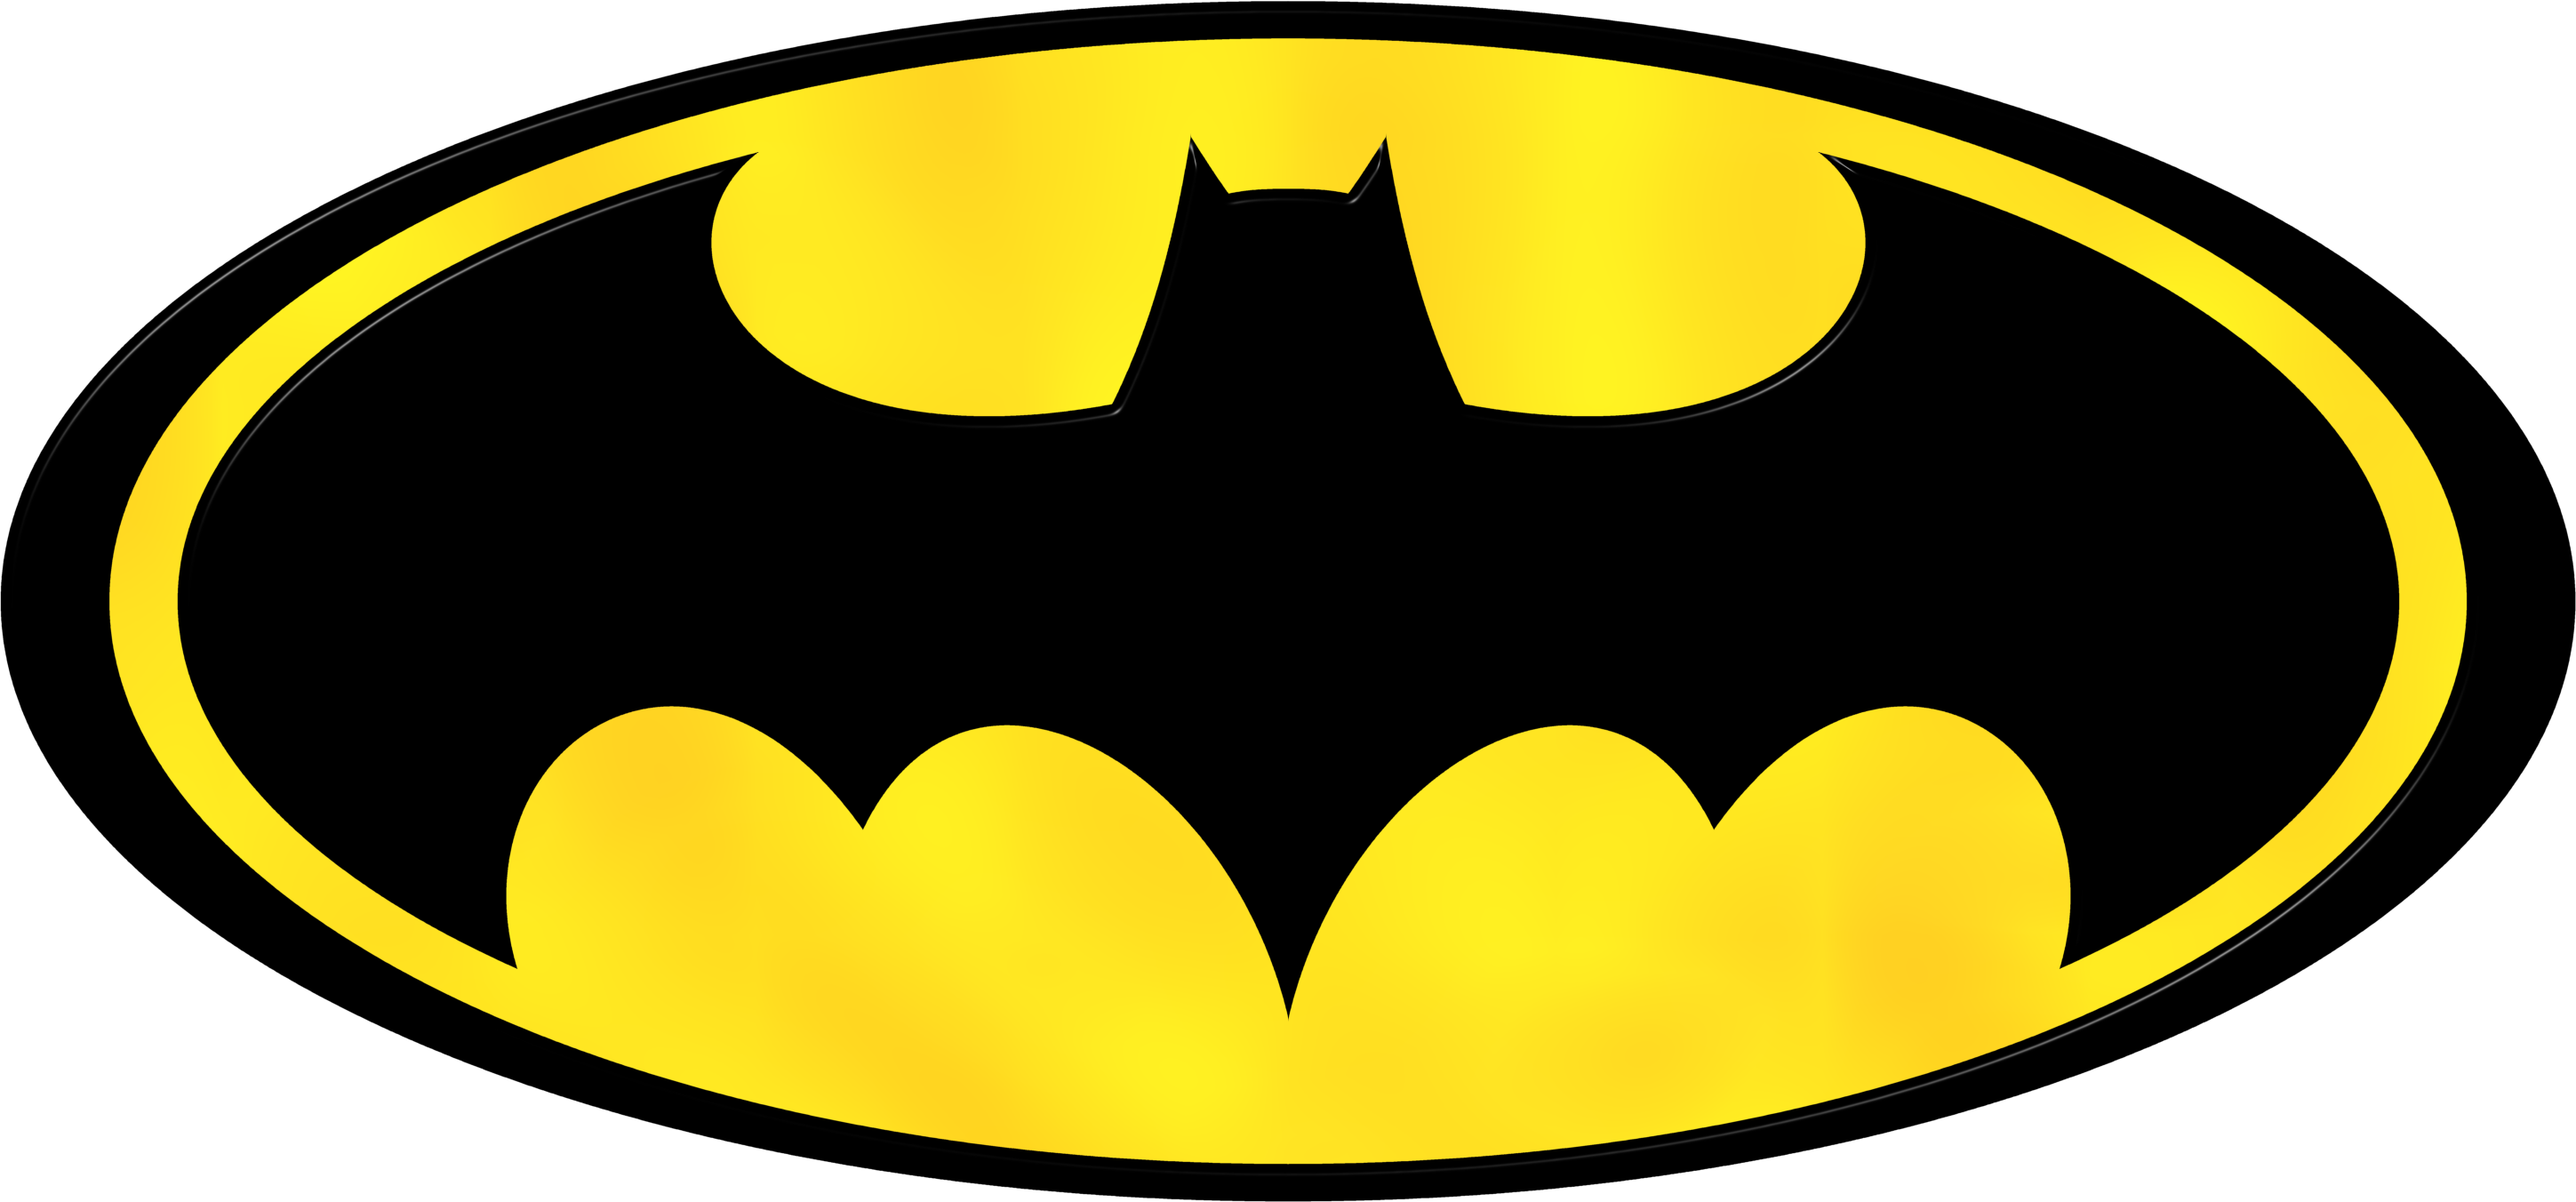 Batman signal png. Just your standard logo